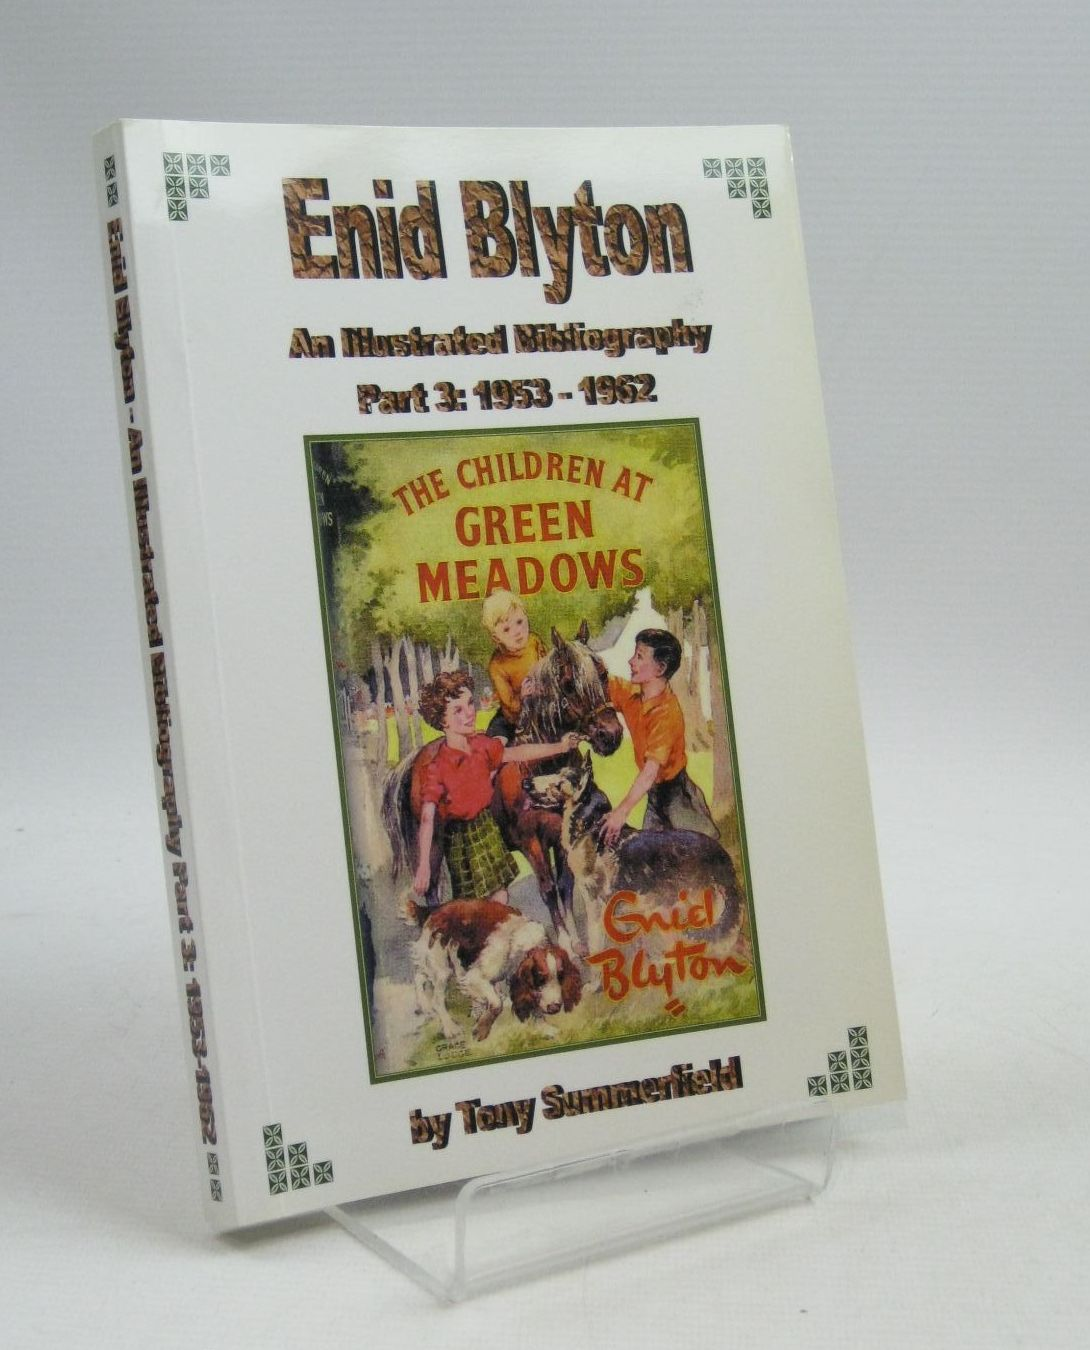 Photo of ENID BLYTON AN ILLUSTRATED BIBLIOGRAPHY PART 3: 1953-1962 written by Summerfield, Tony published by Milford Books (STOCK CODE: 1404685)  for sale by Stella & Rose's Books